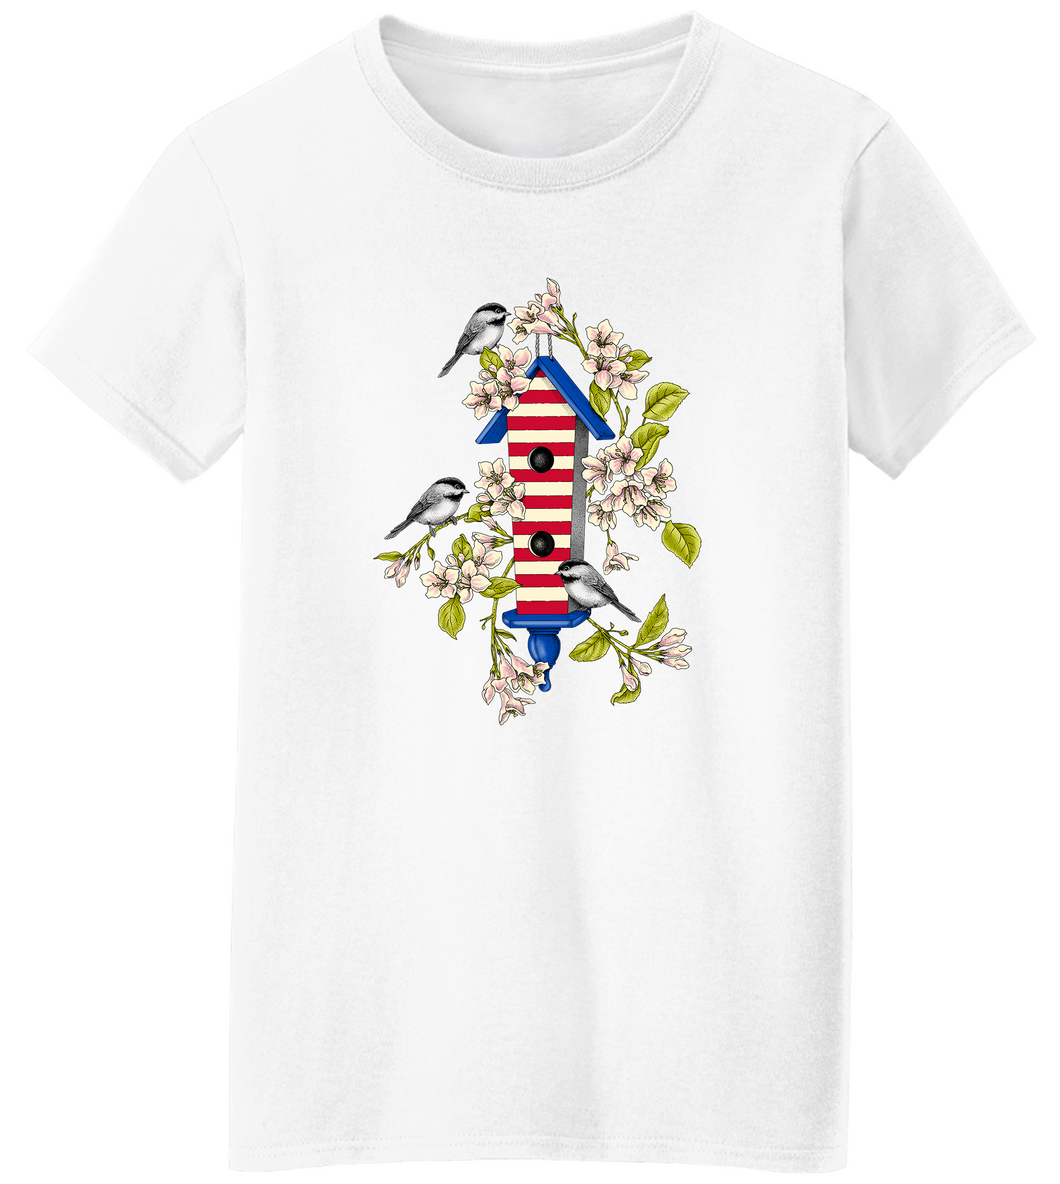 USA Birdhouse Short Sleeve T-Shirt